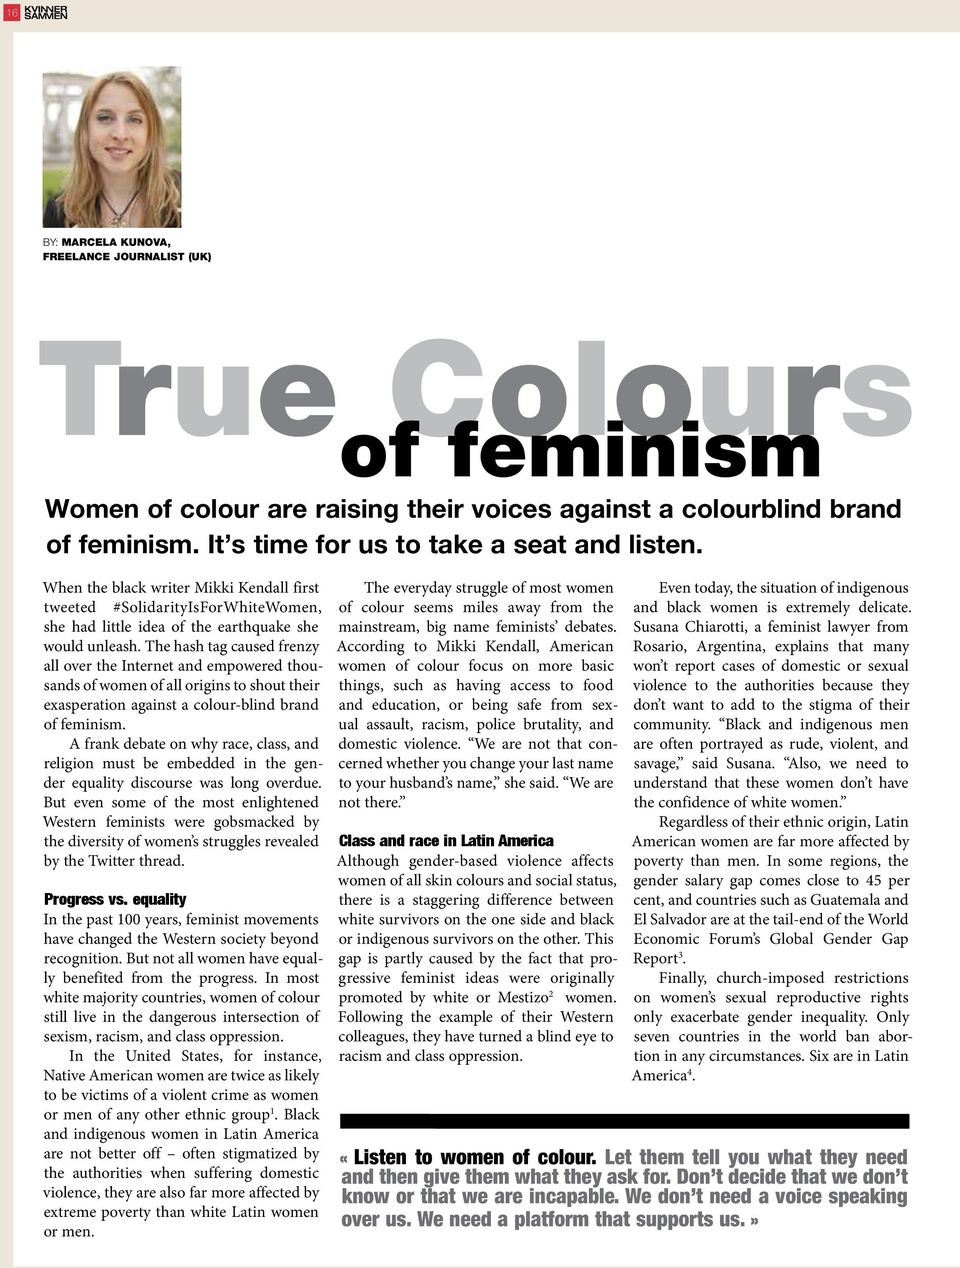 The hash tag caused frenzy all over the Internet and empowered thousands of women of all origins to shout their exasperation against a colour-blind brand of feminism.